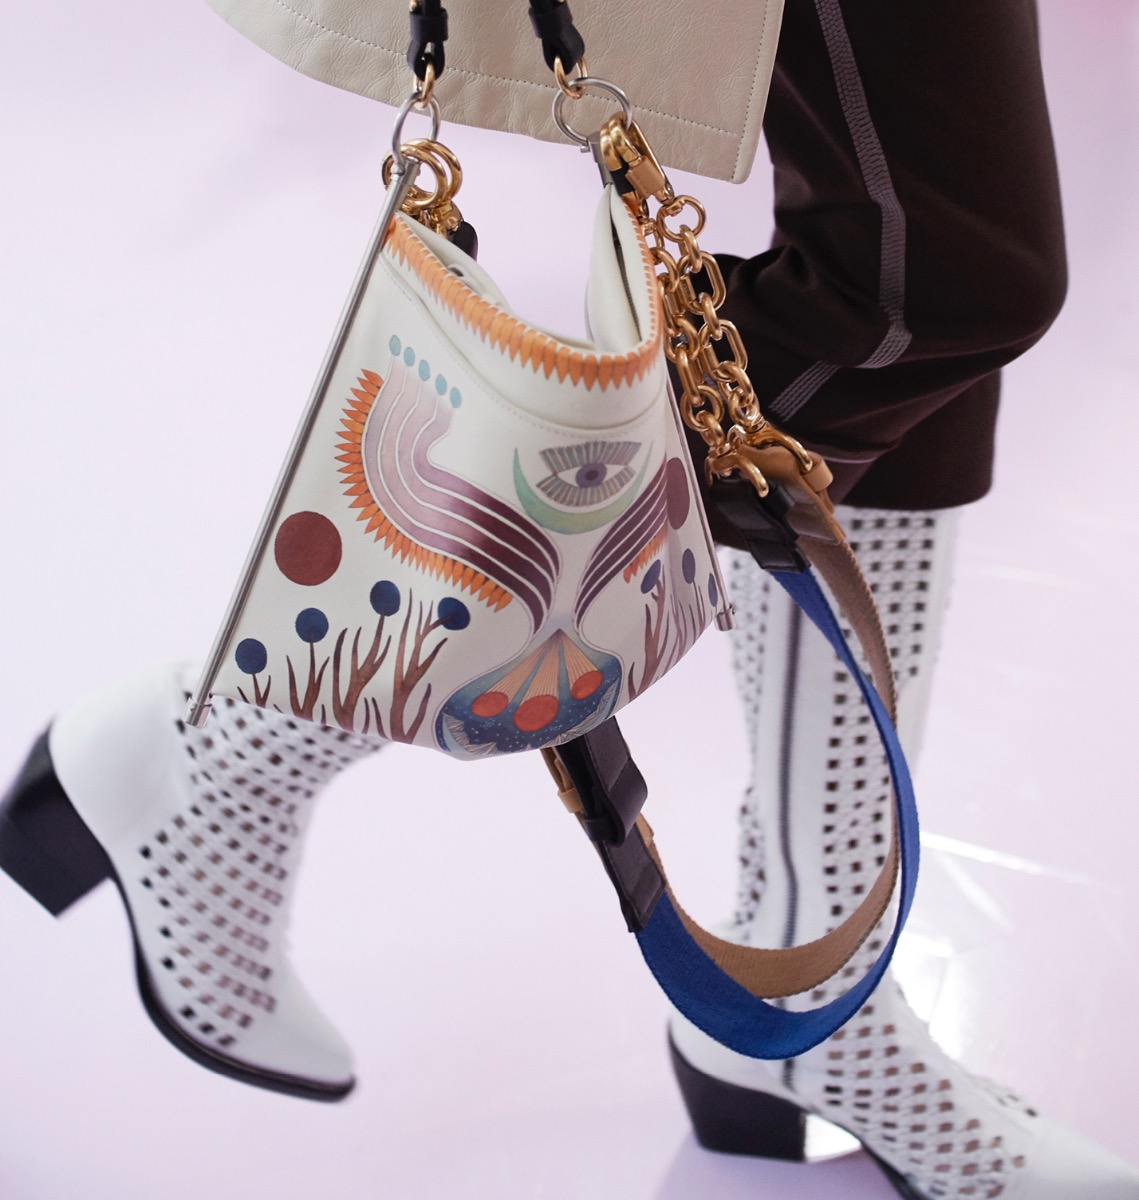 Chloé's Roy, The New Summer It Bag